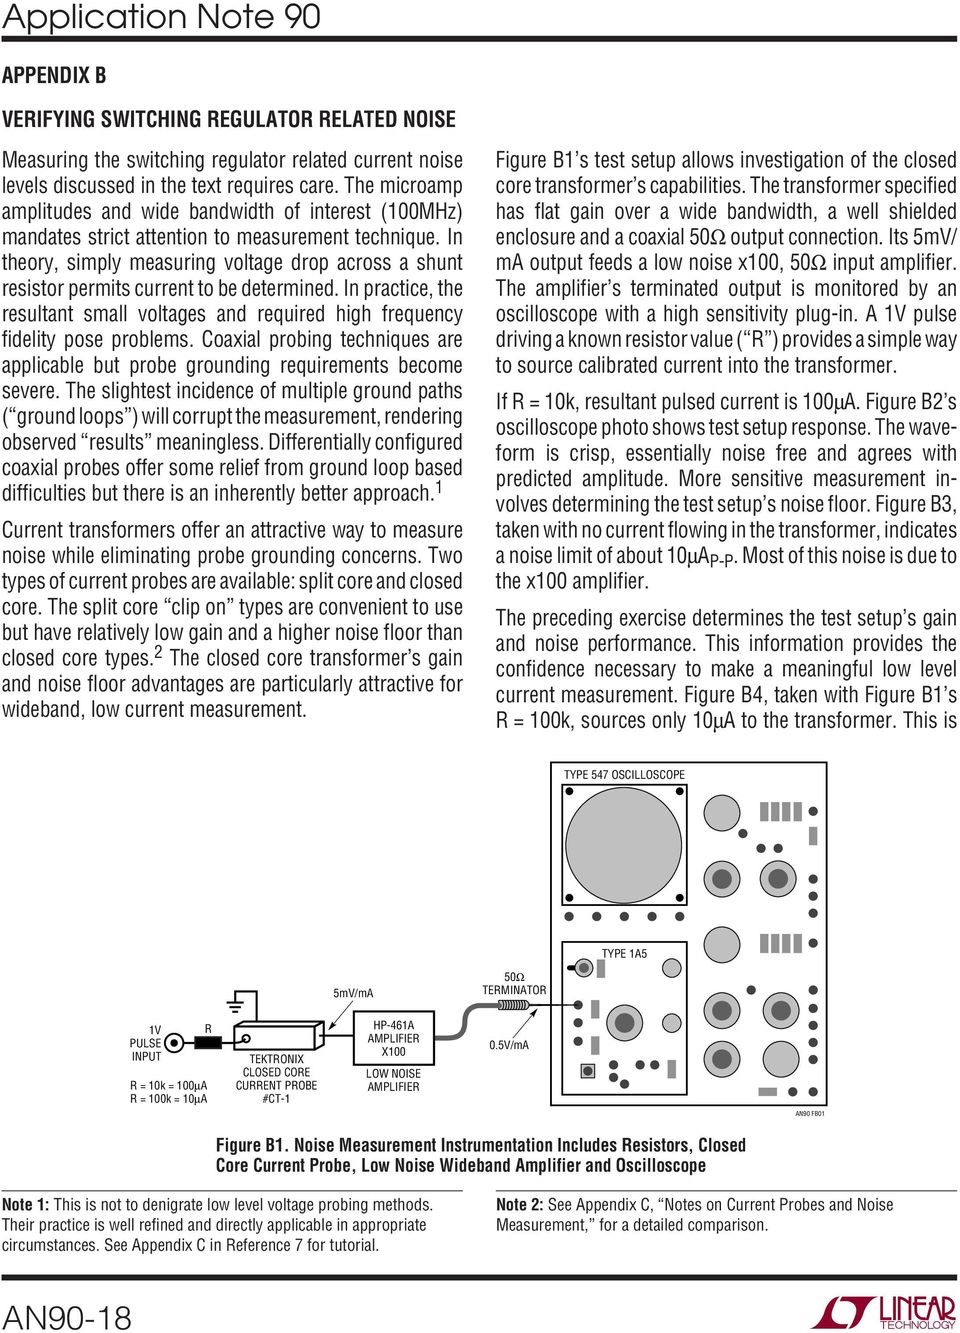 April 2002 Current Sources For Fiber Optic Lasers Pdf Lt1006 Precision Single Supply Op Amp Linear Technology In Theory Simply Measuring Voltage Drop Across A Shunt Resistor Permits To Be Determined